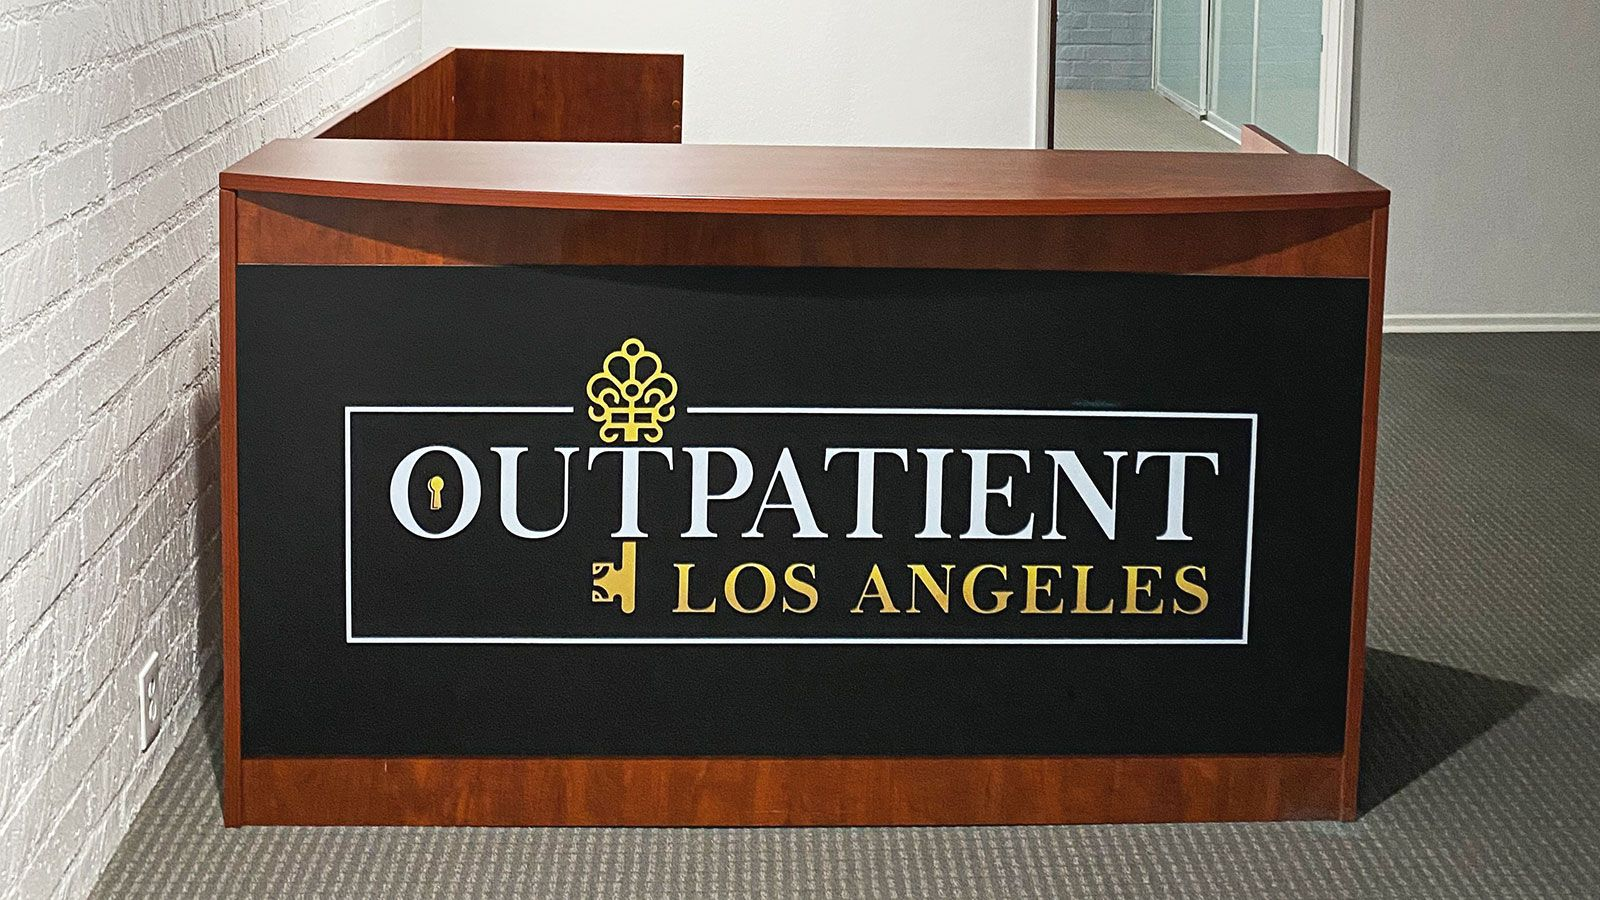 Outpatient Los Angeles reception desk logo sign made of PVC for interior branding